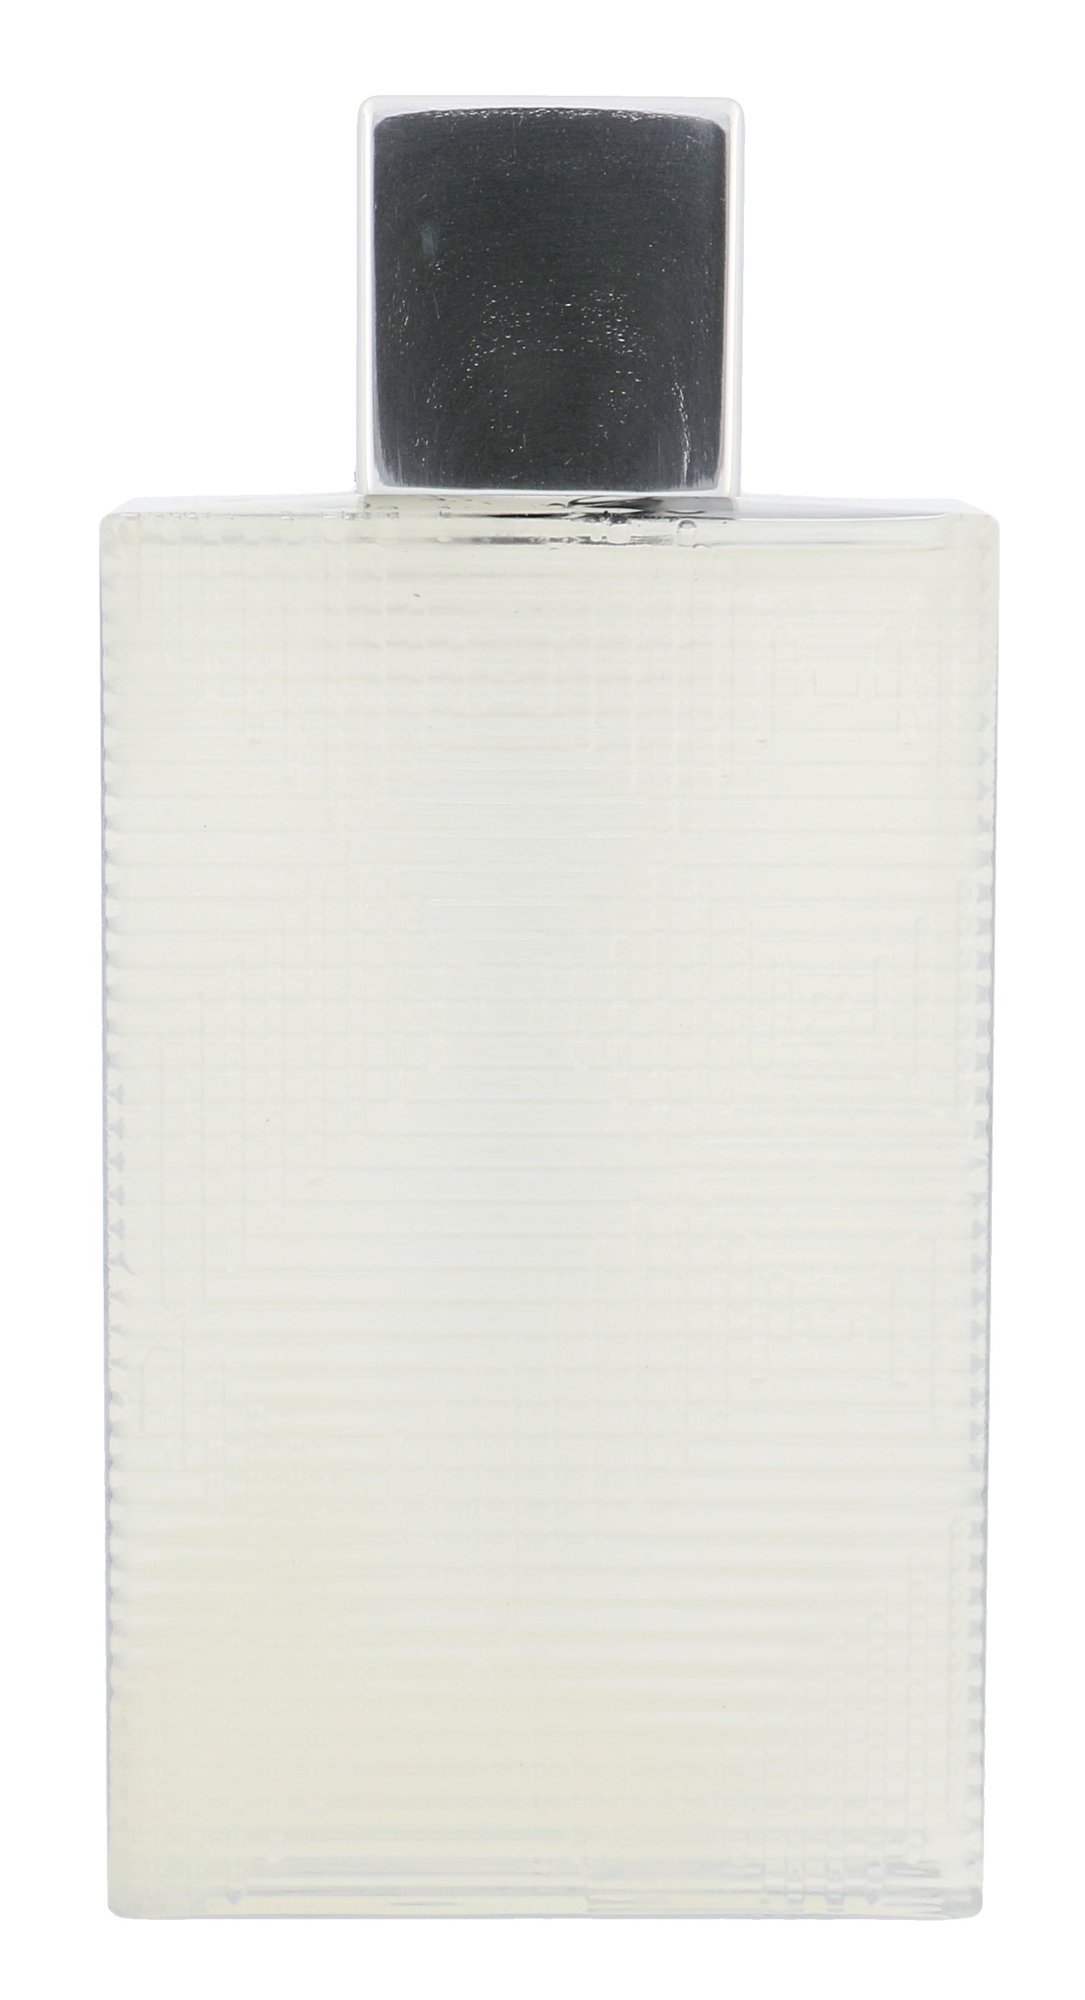 Burberry Brit For Him Sprchový gel, M, 150 ml